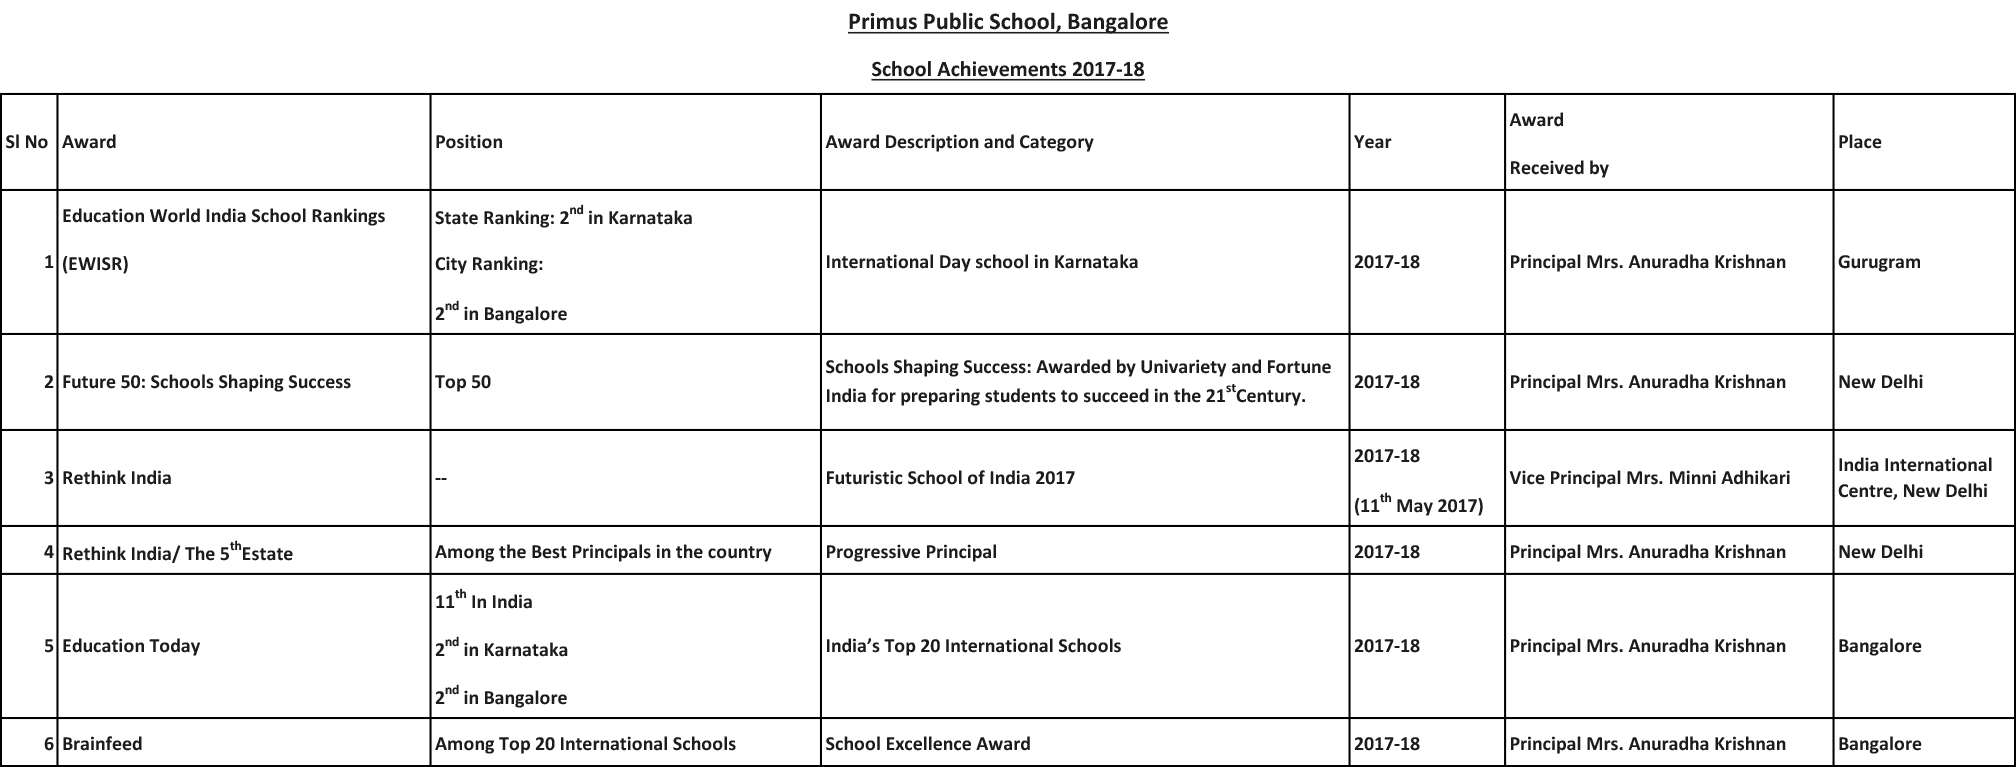 School-Achievements-2017-18